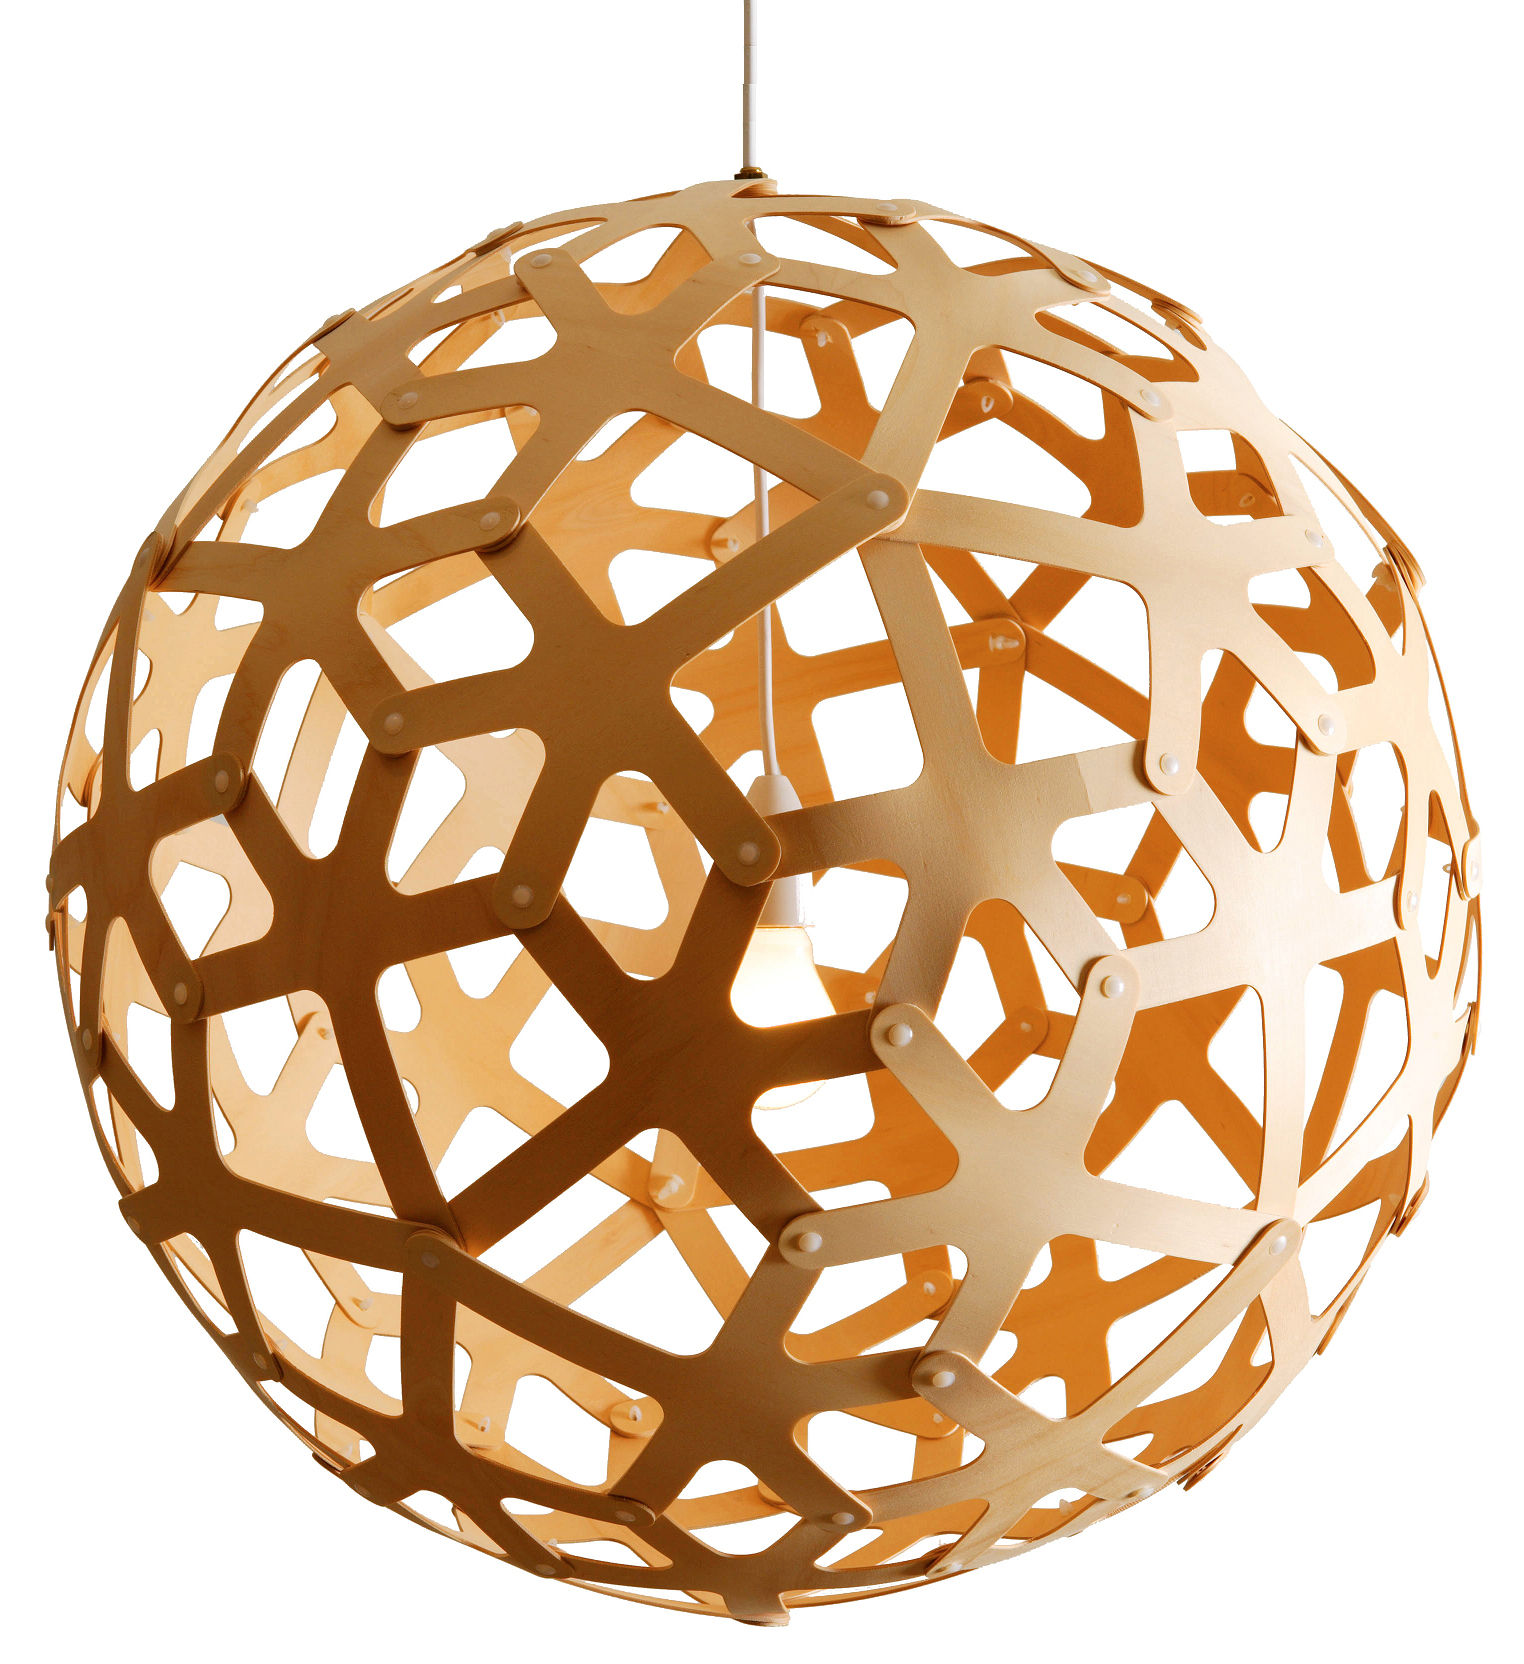 Lighting - Pendant Lighting - Coral Pendant - / Ø 60 cm by David Trubridge - Wood - Pine plywood